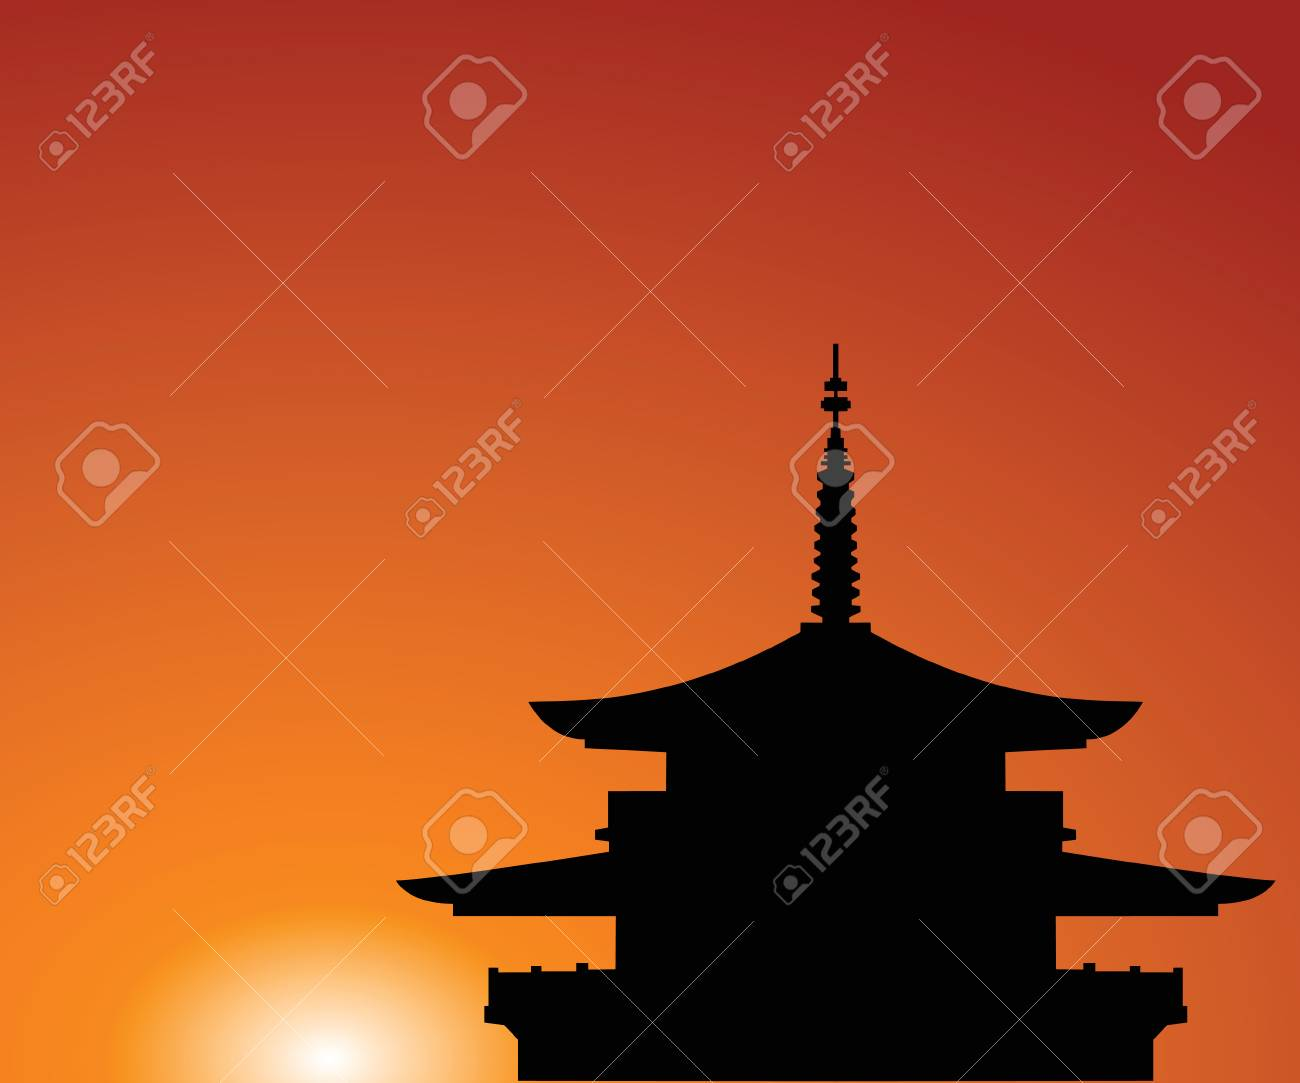 Silhouette of a building in Asia on a background of the sky Stock Vector - 7535611